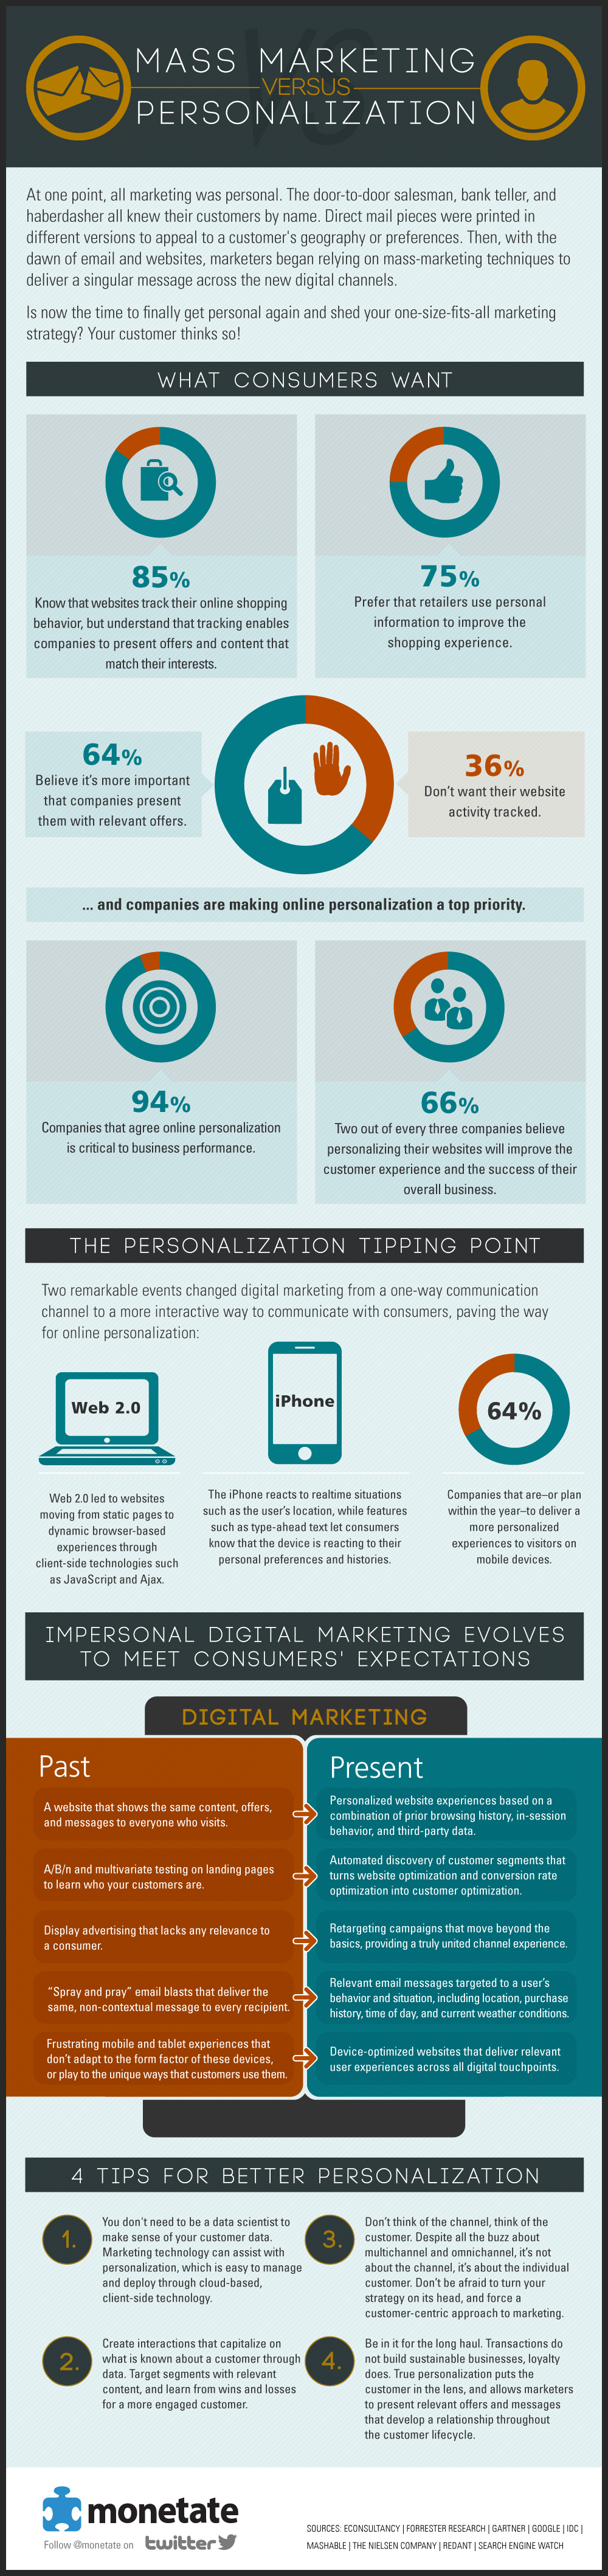 mass-marketing-versus-personalization_518a3843e32ce